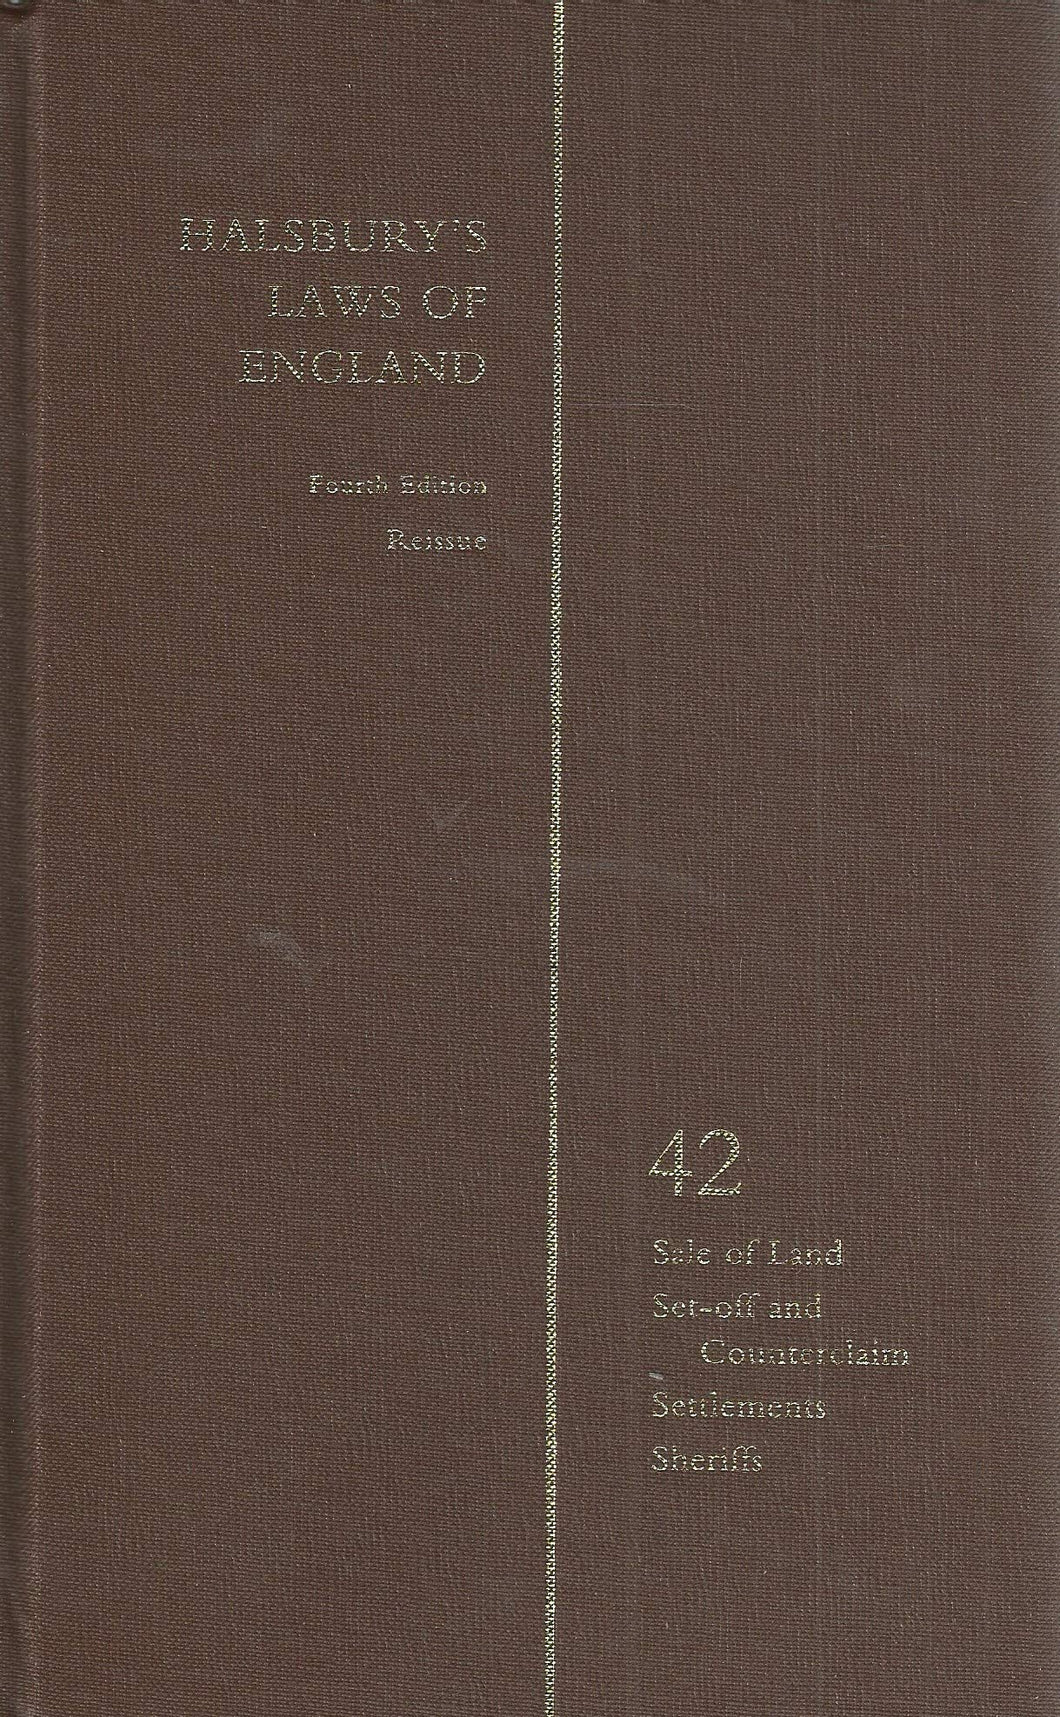 Halsbury's Laws of England Vol 42